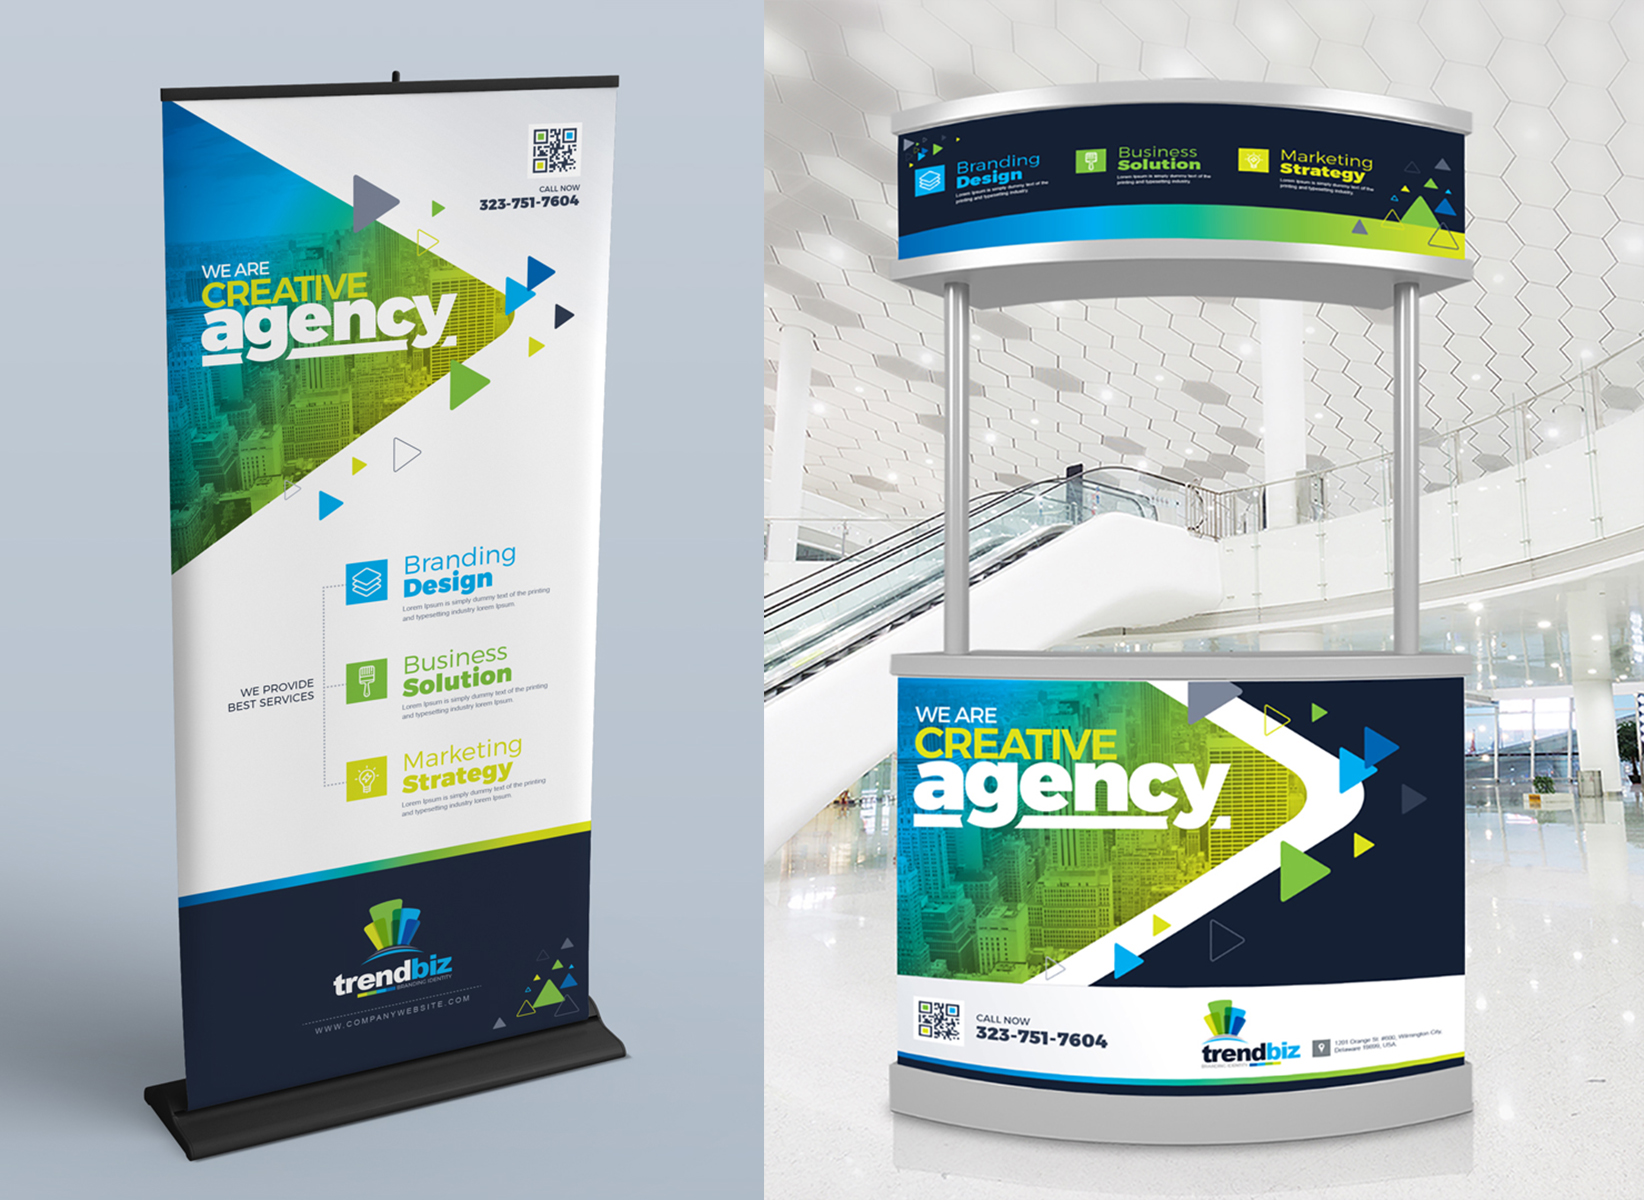 https://s3.tmimgcdn.com/templates/4892/scr/01_Rollup-Banner%20and%20Promotional%20Counter.jpg